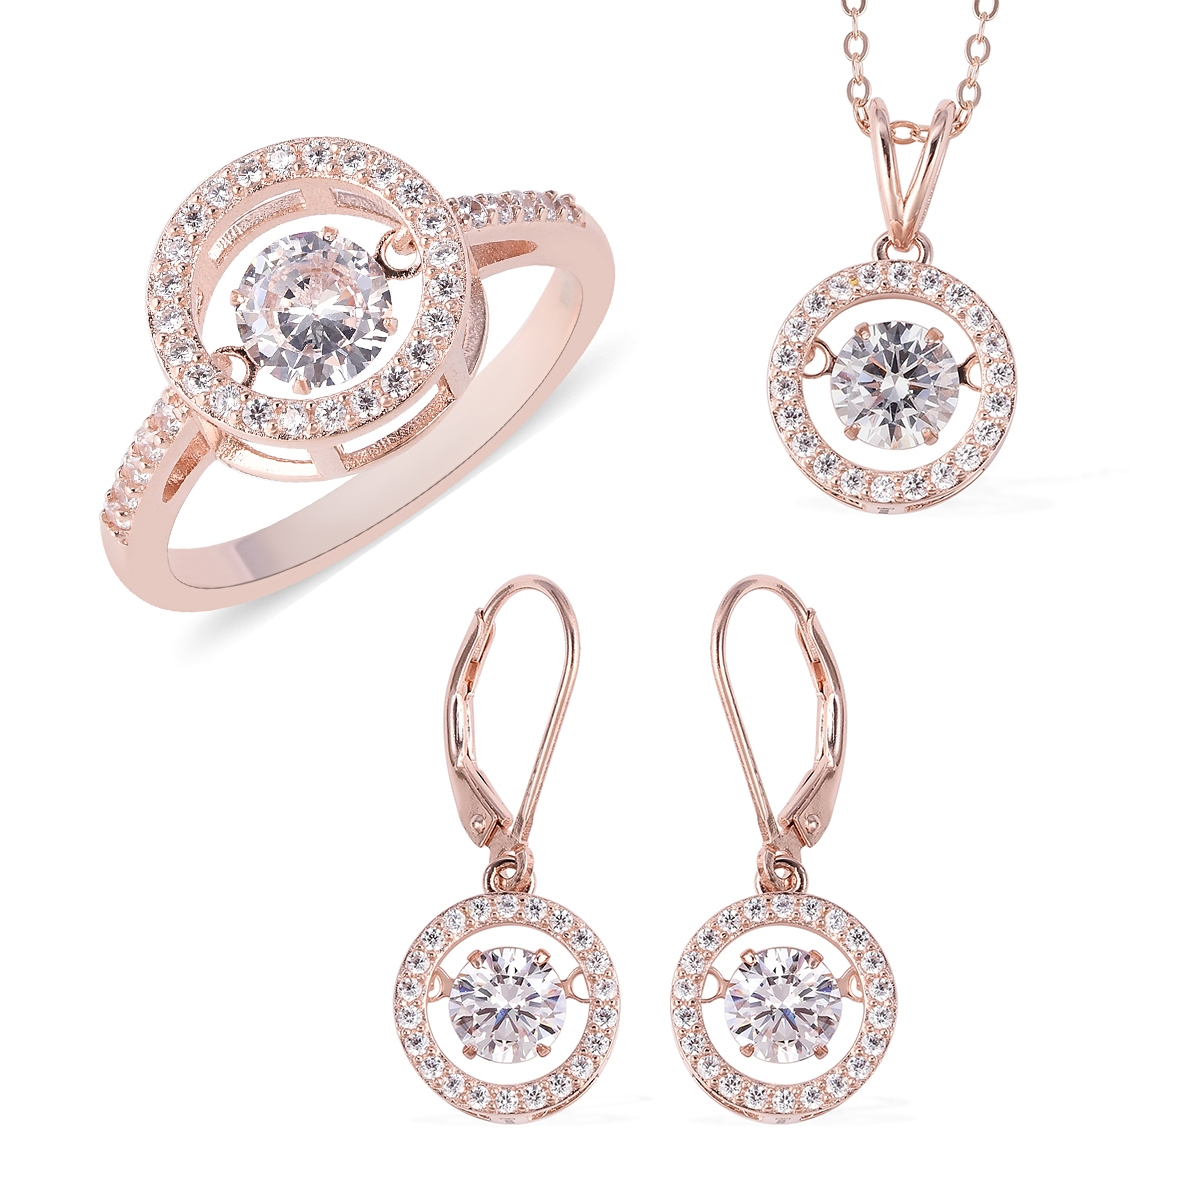 Lustro Stella Dancing Cz Halo Set Earrings, Ring (Size 10) And Pendant Necklace (18 In) In Vermeil Rg Over Sterling Silver (Avg. 14 G) (View 15 of 25)